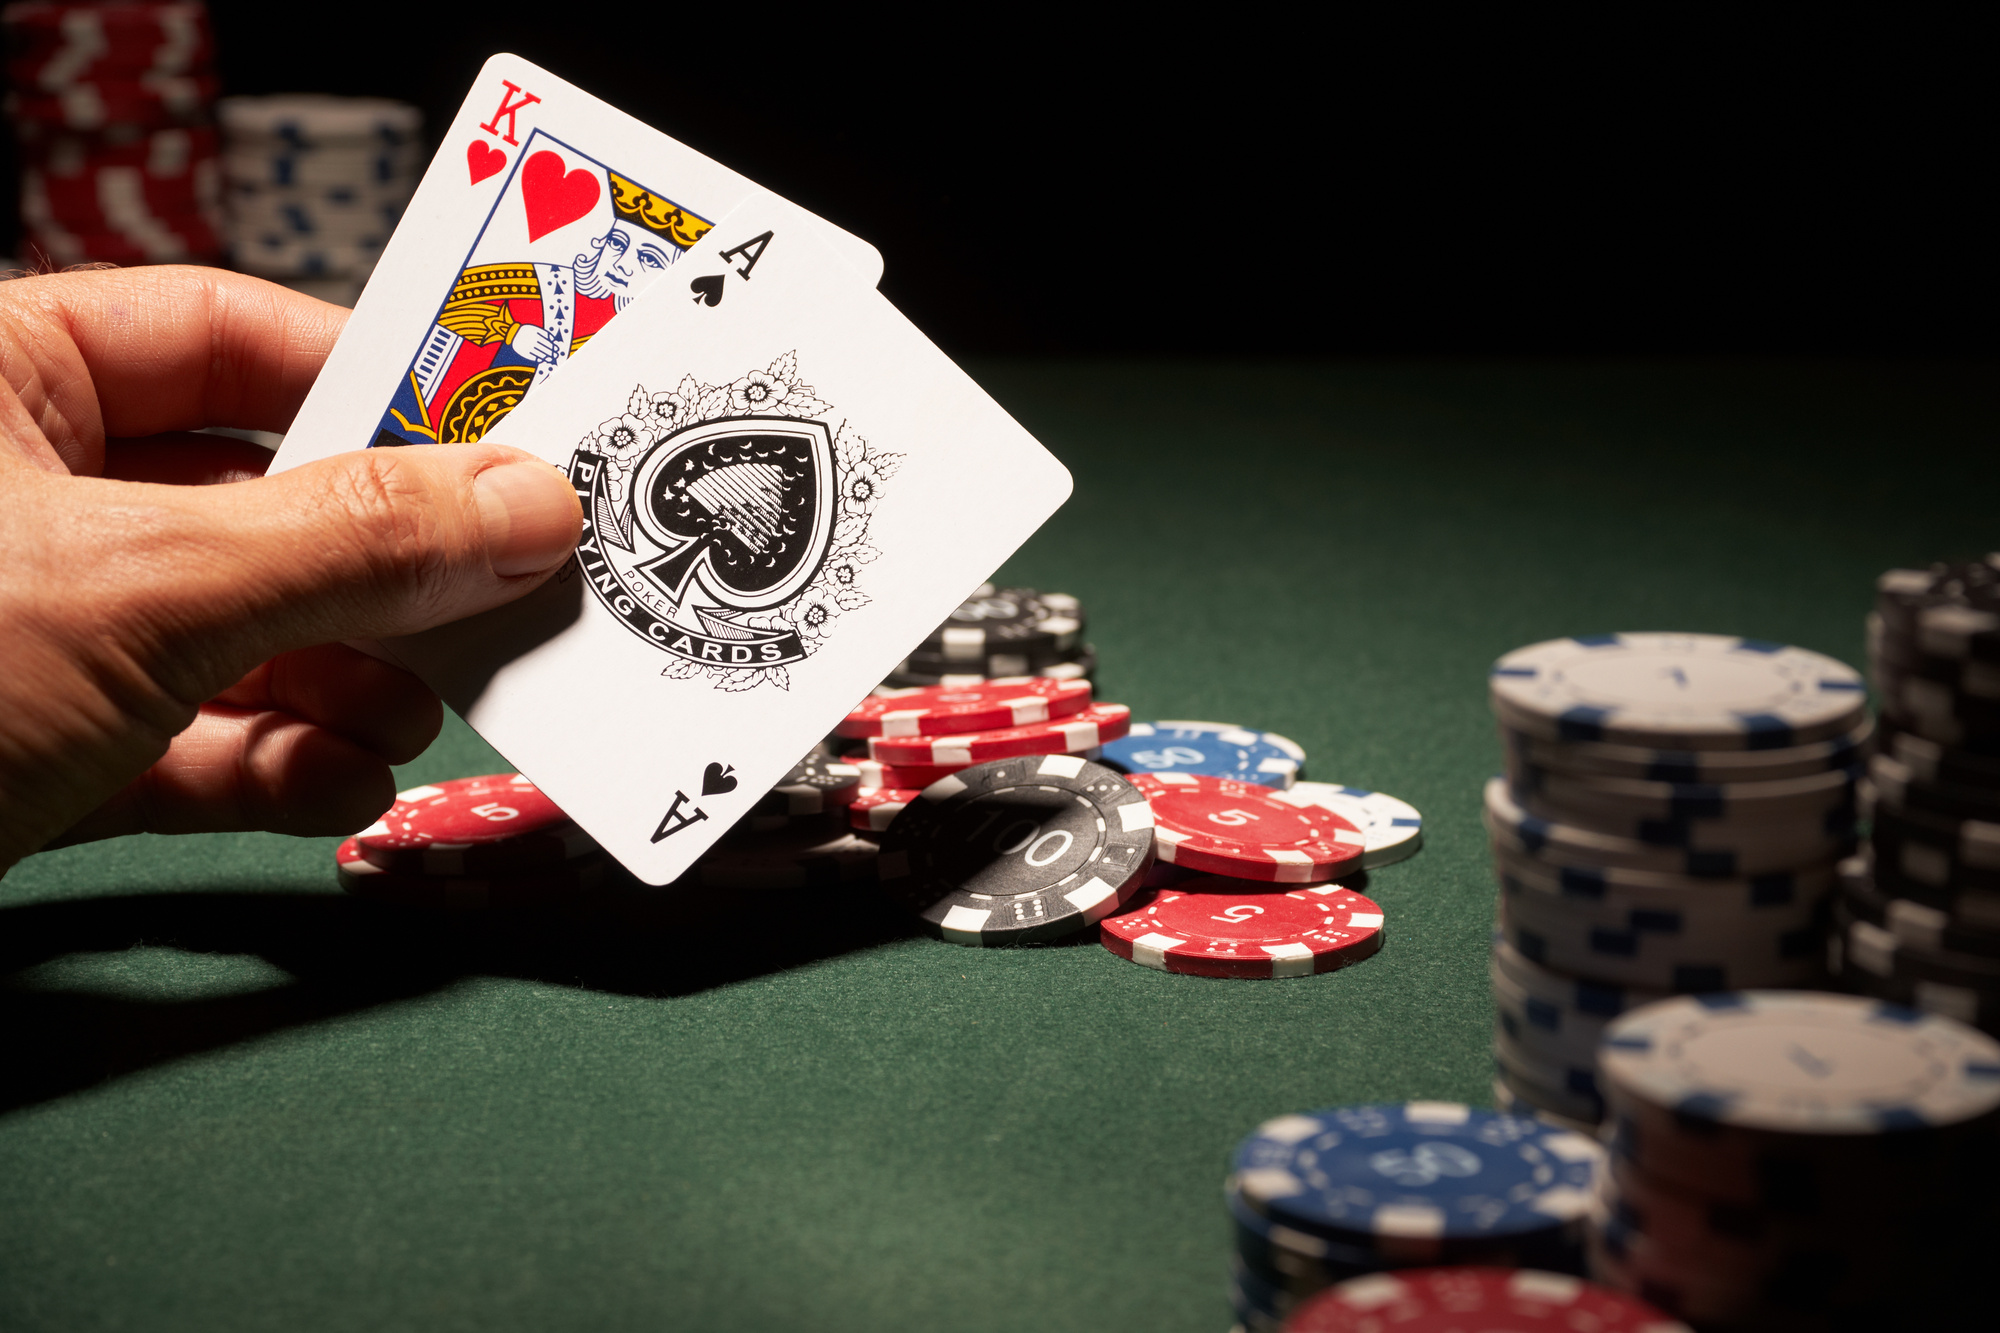 King of hearts and ace of spades cards with casino chips